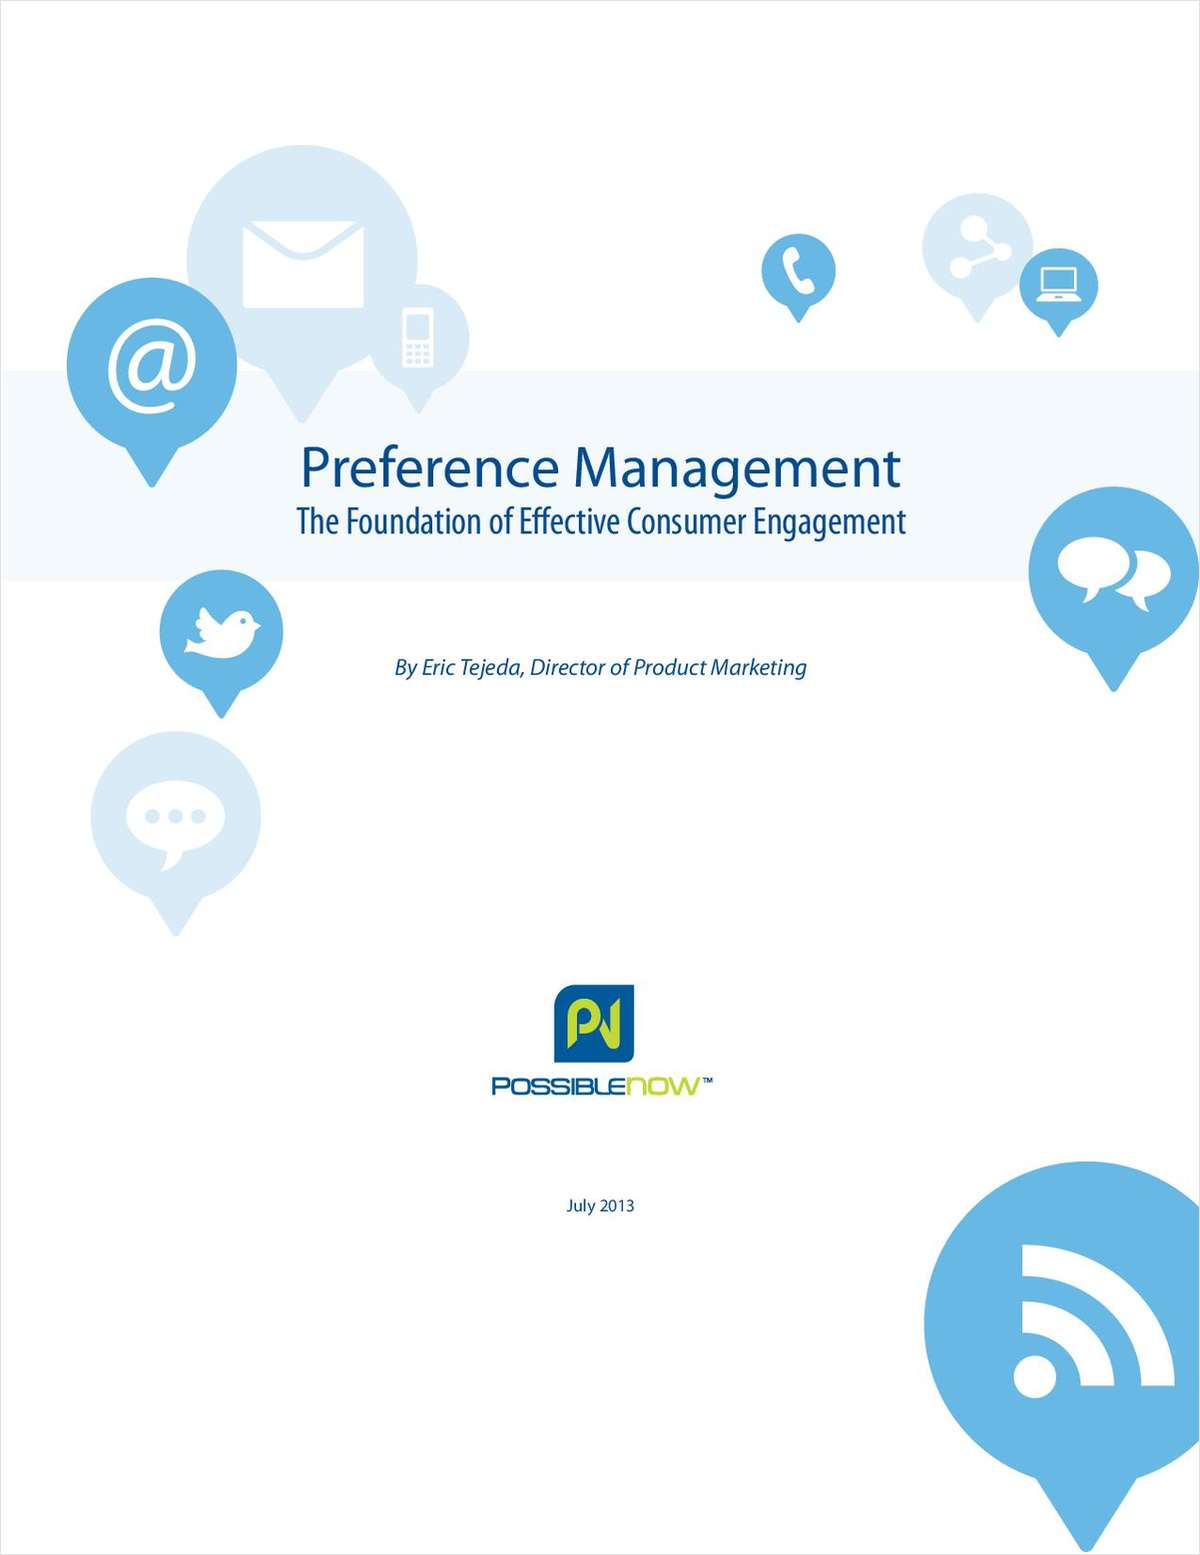 Preference Management: The Foundation of Effective Consumer Engagement